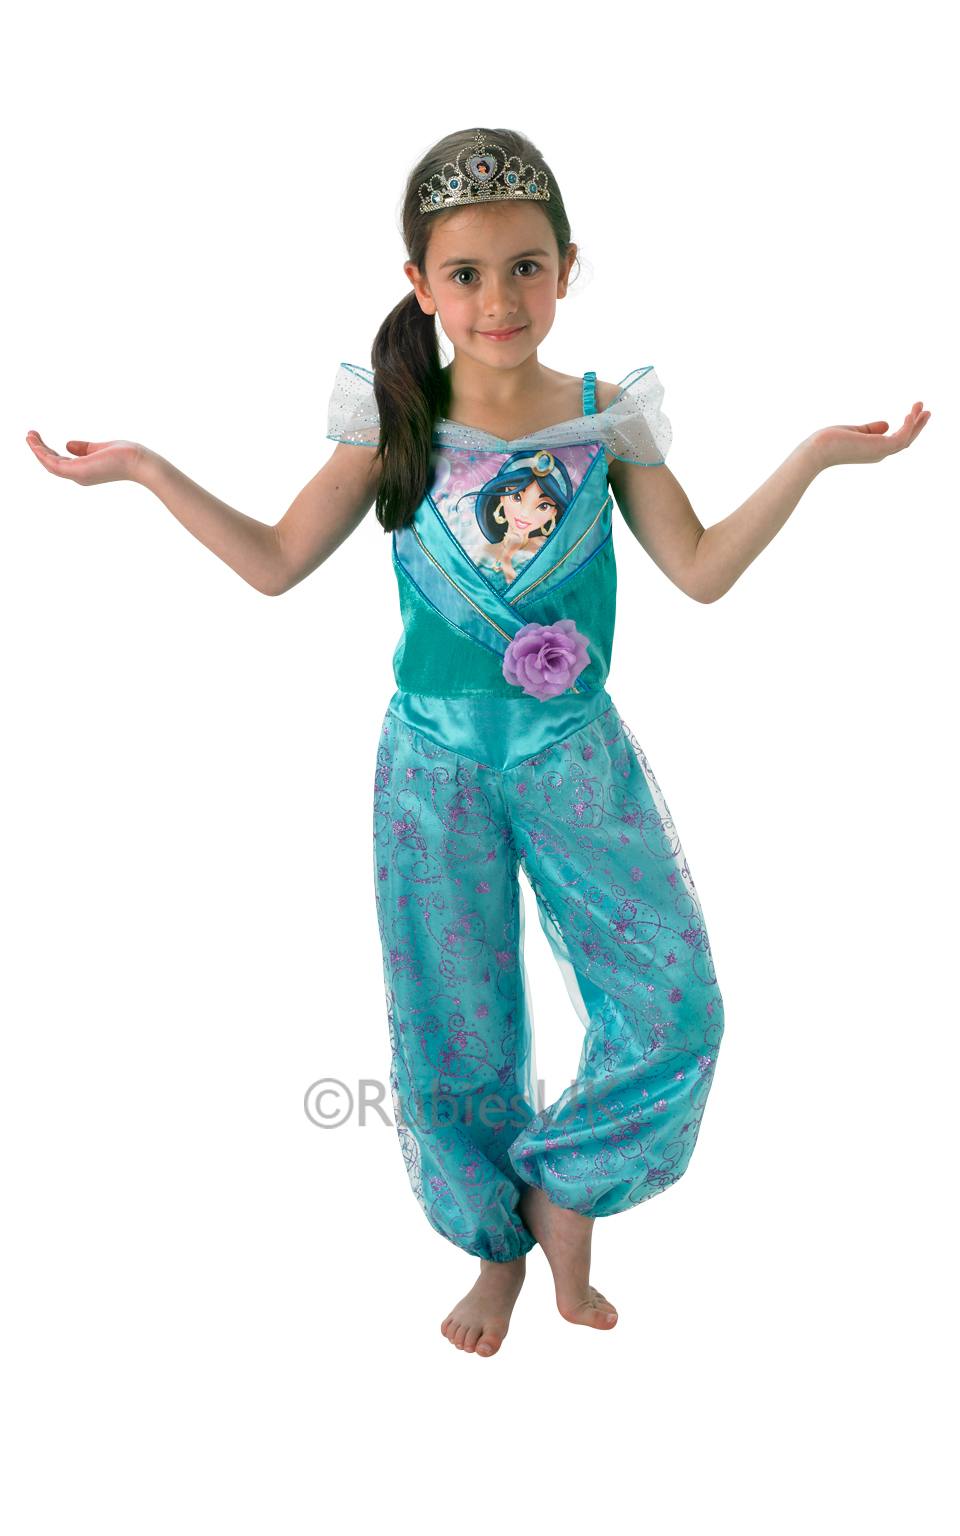 Child Disney Princess Jasmine Shimmer Girls Book Week Fancy Dress Kids Costume  sc 1 st  Wonderland Party & Child Disney Princess Jasmine Shimmer Girls Book Week Fancy Dress ...